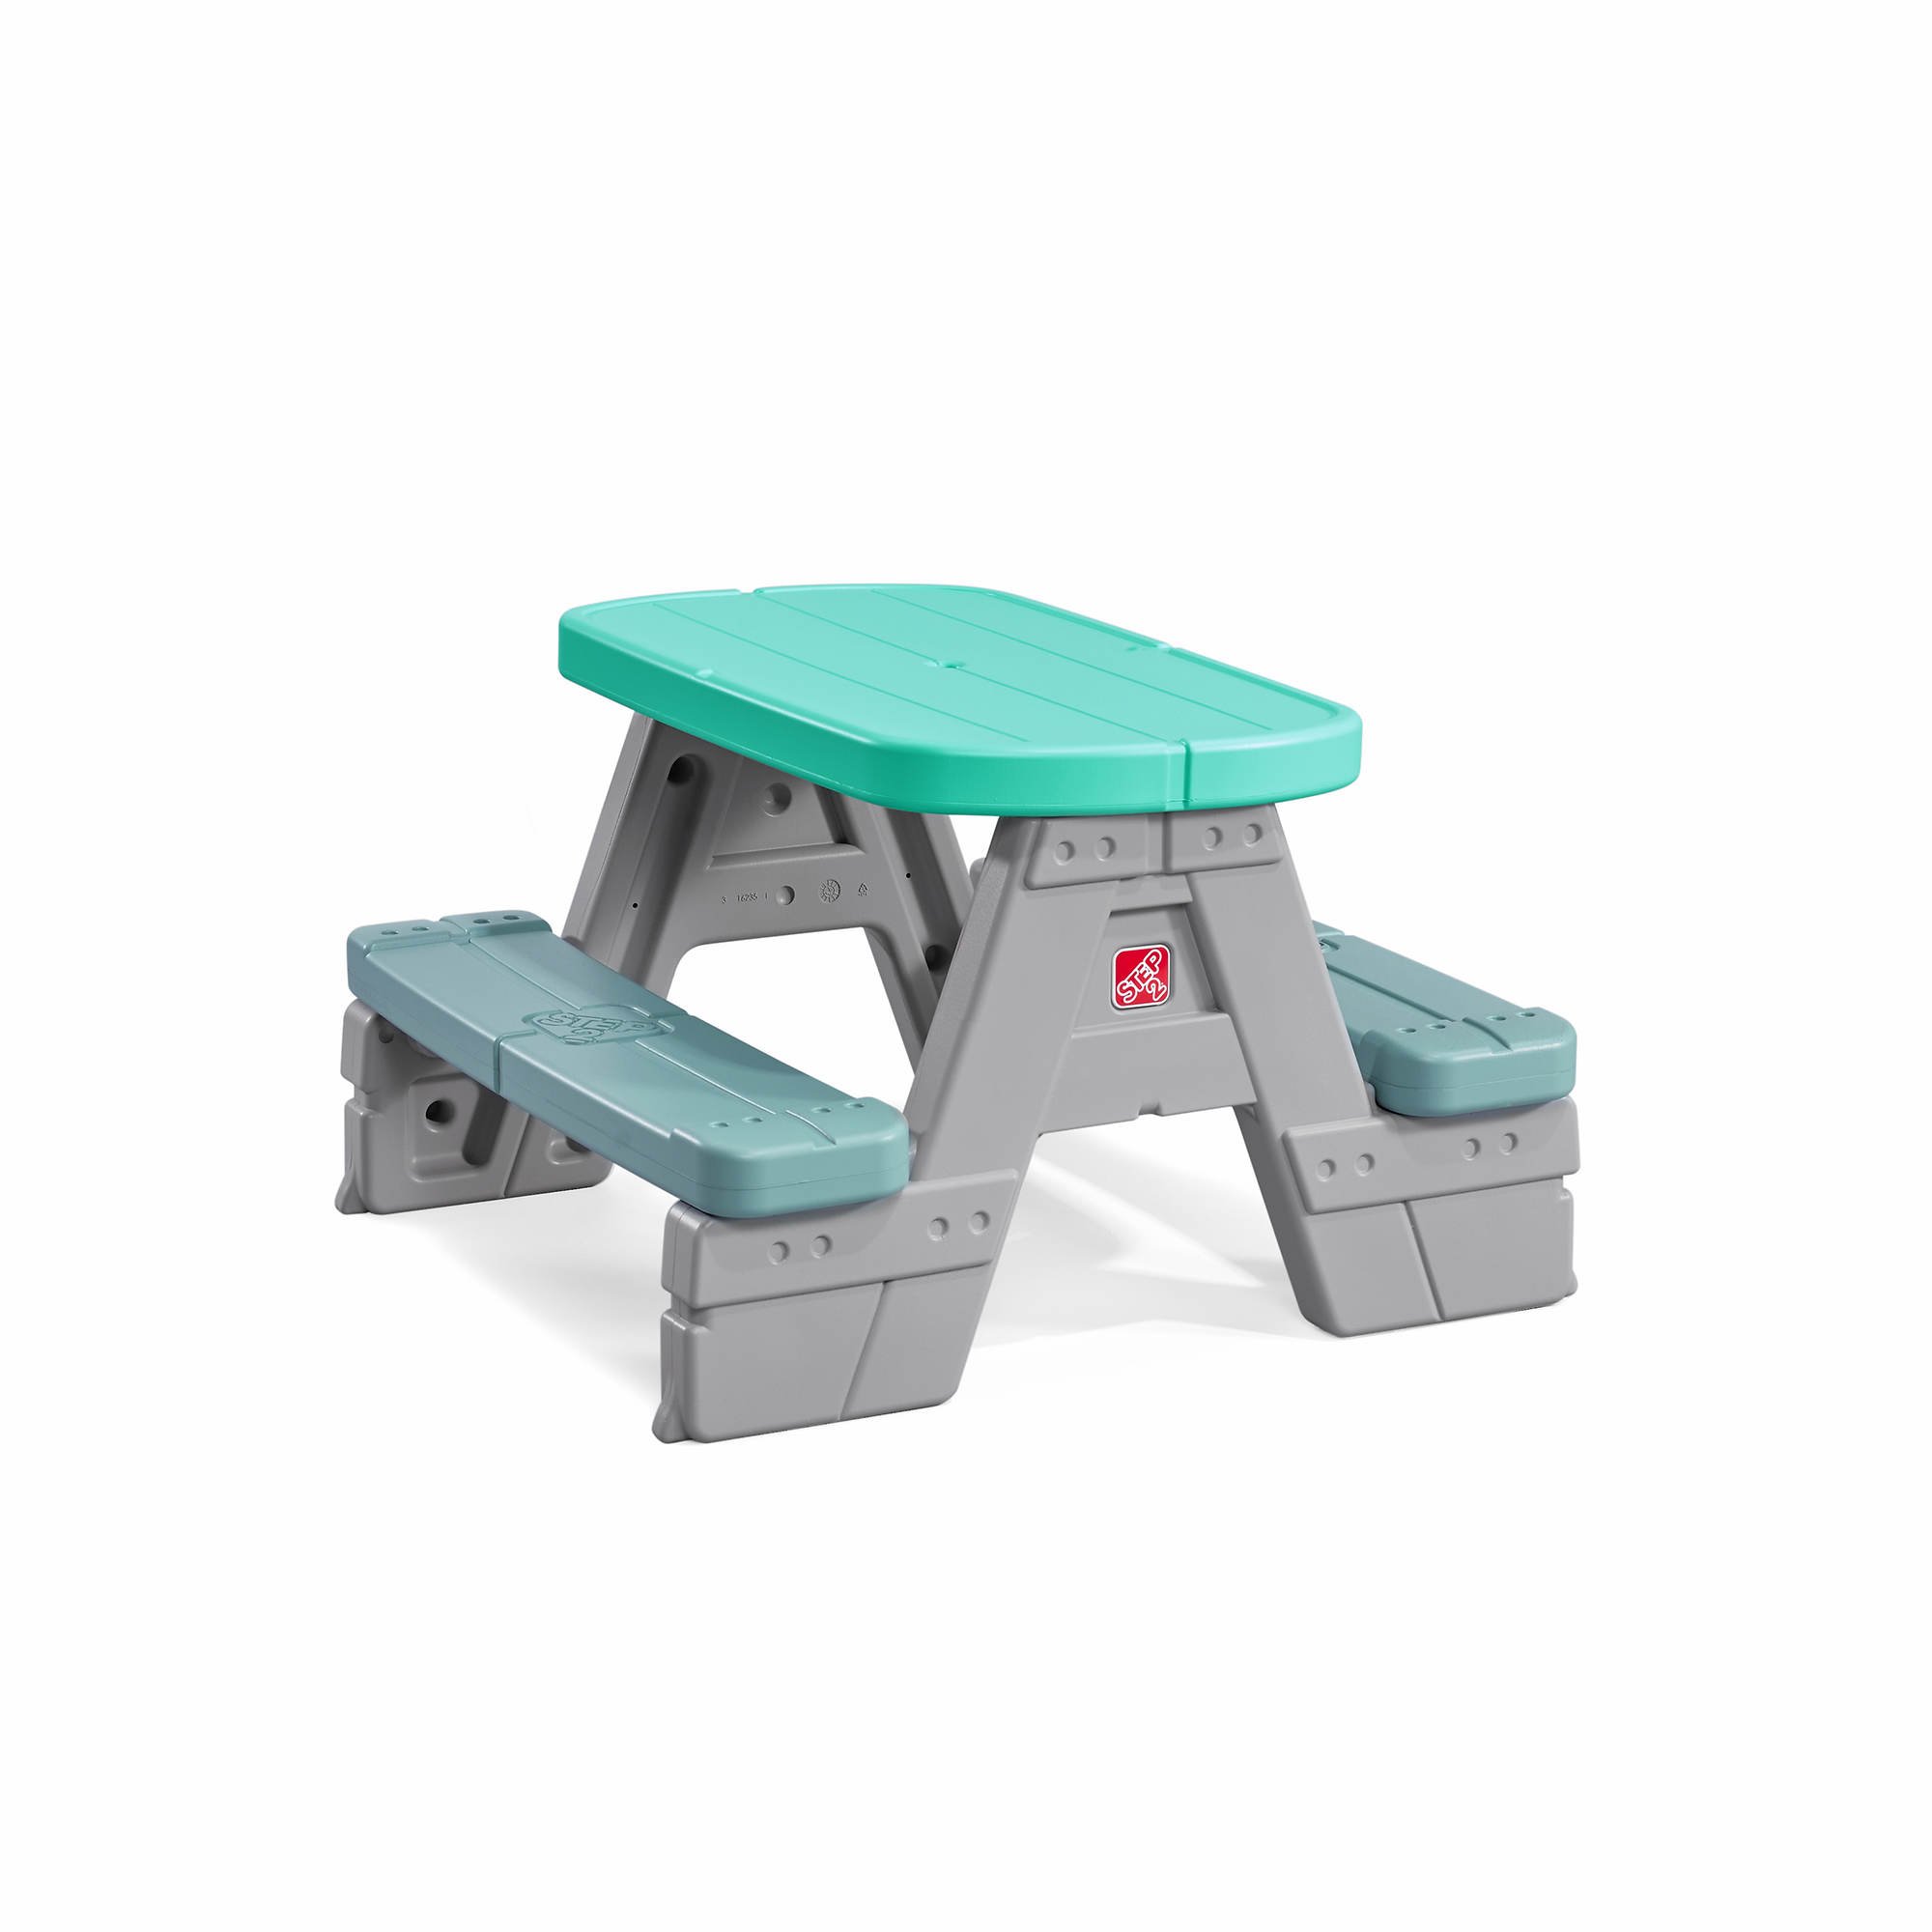 Step2 sit and snack picnic table bjs wholesale club step2 sit and snack picnic table 0 undefined 1 undefined 2 undefined 3 undefined 4 undefined 5 undefined watchthetrailerfo